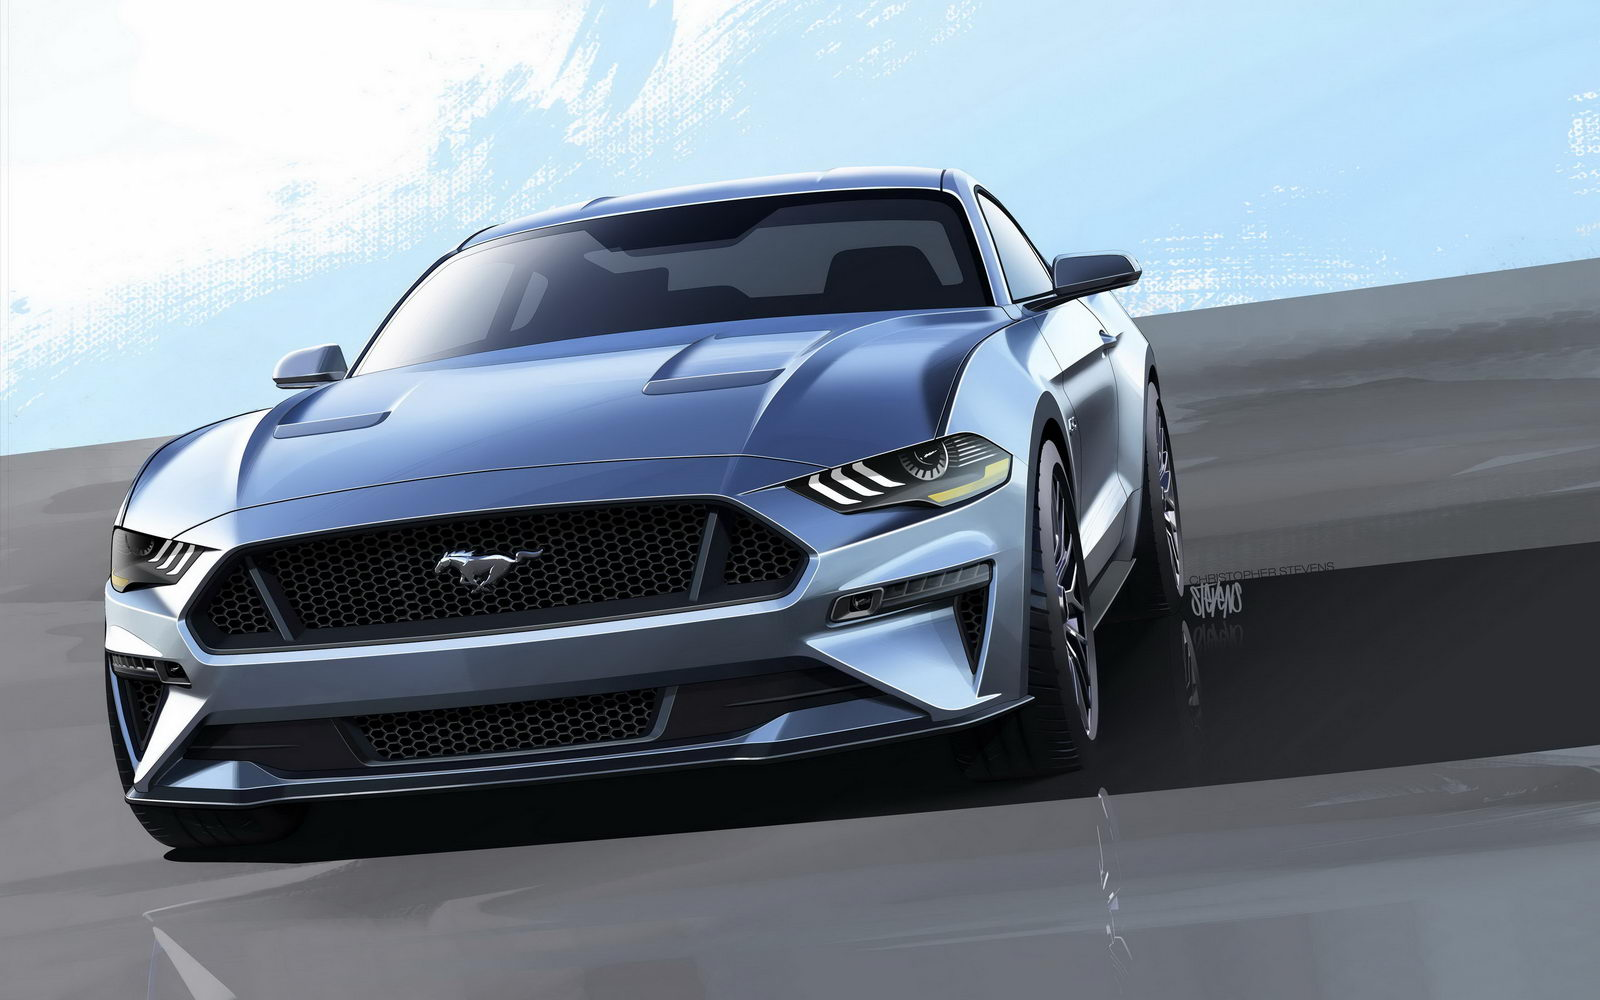 Ford Mustang GT facelift 2018 7